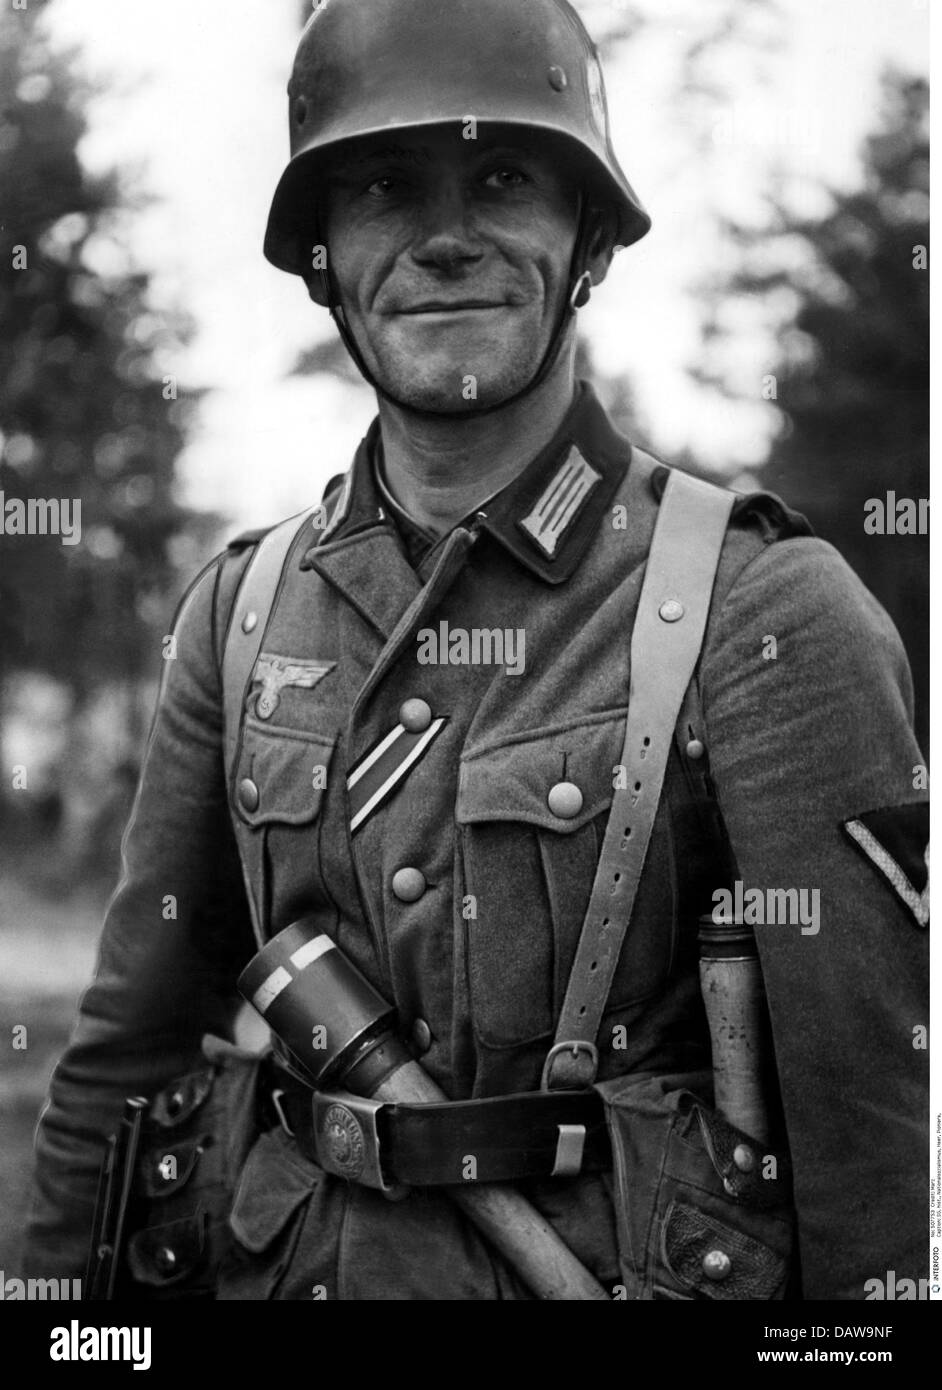 nazism national socialism military wehrmacht army